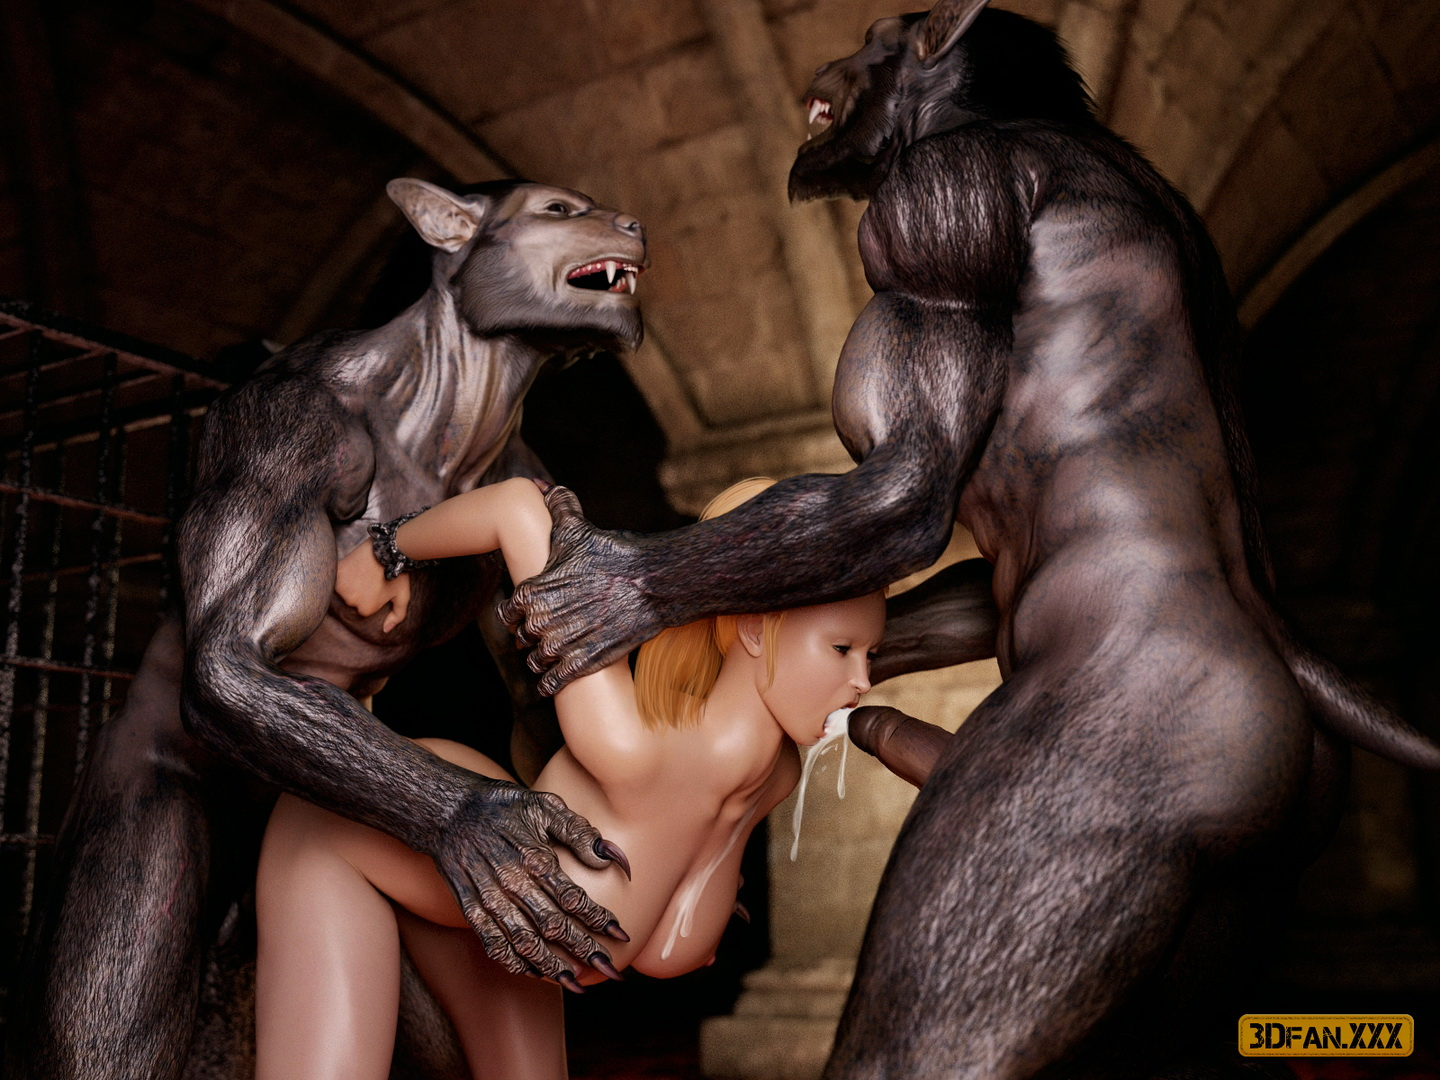 3d sex with monsters girls porno photos